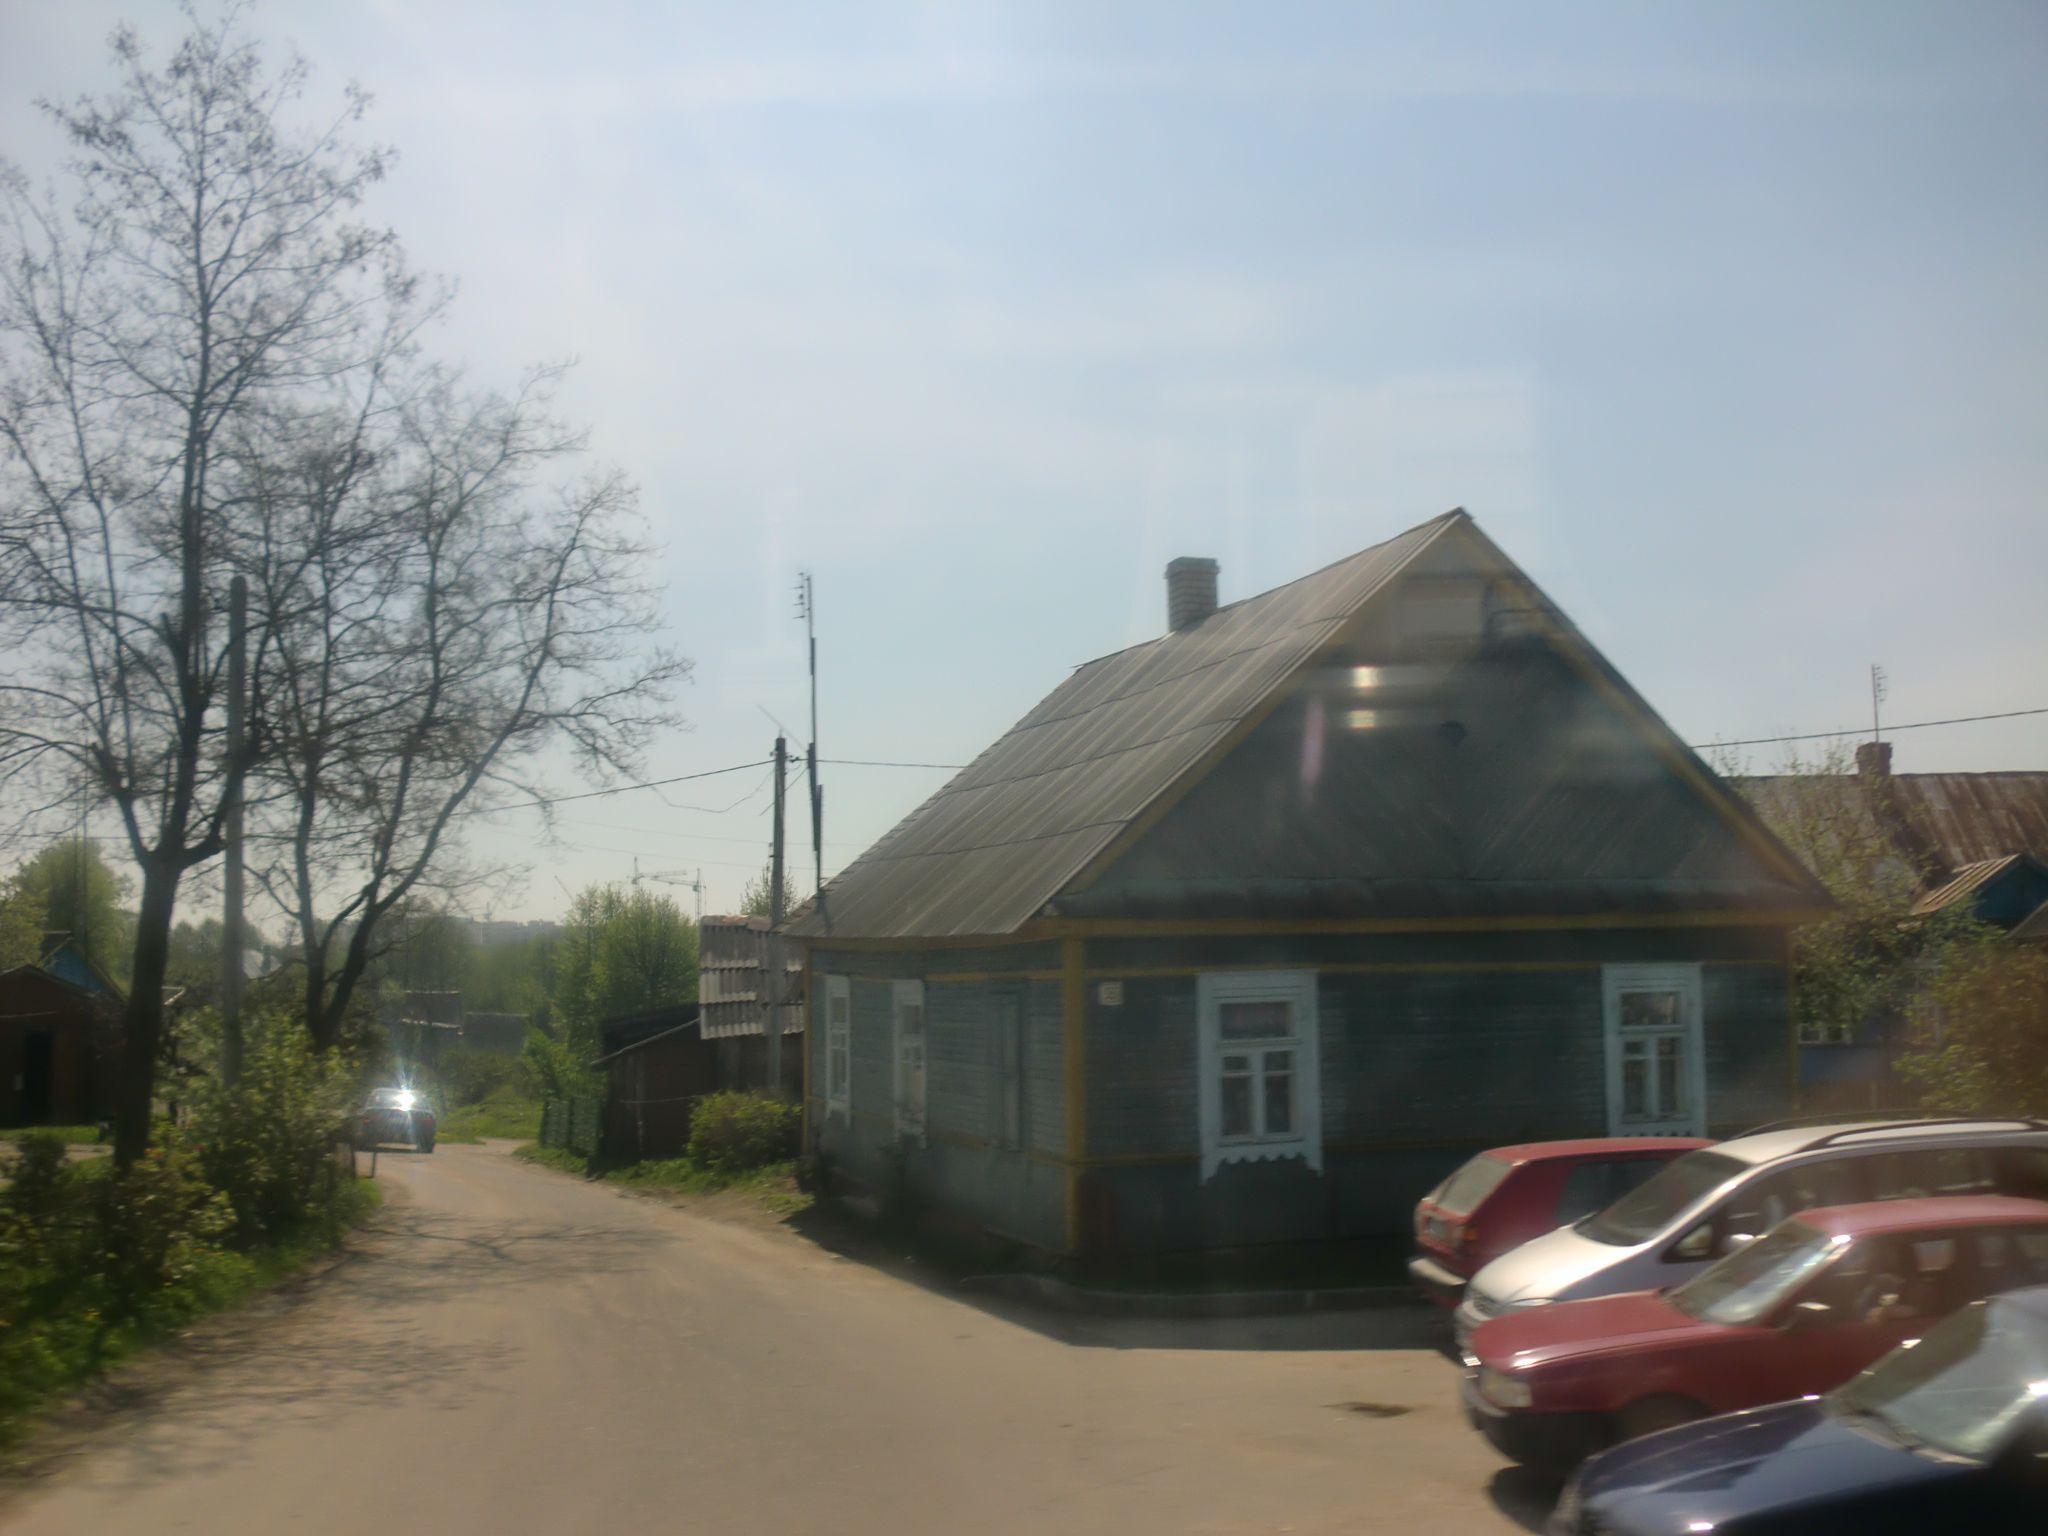 From Vilnius to Minsk by bus- Cars parked in front of a house